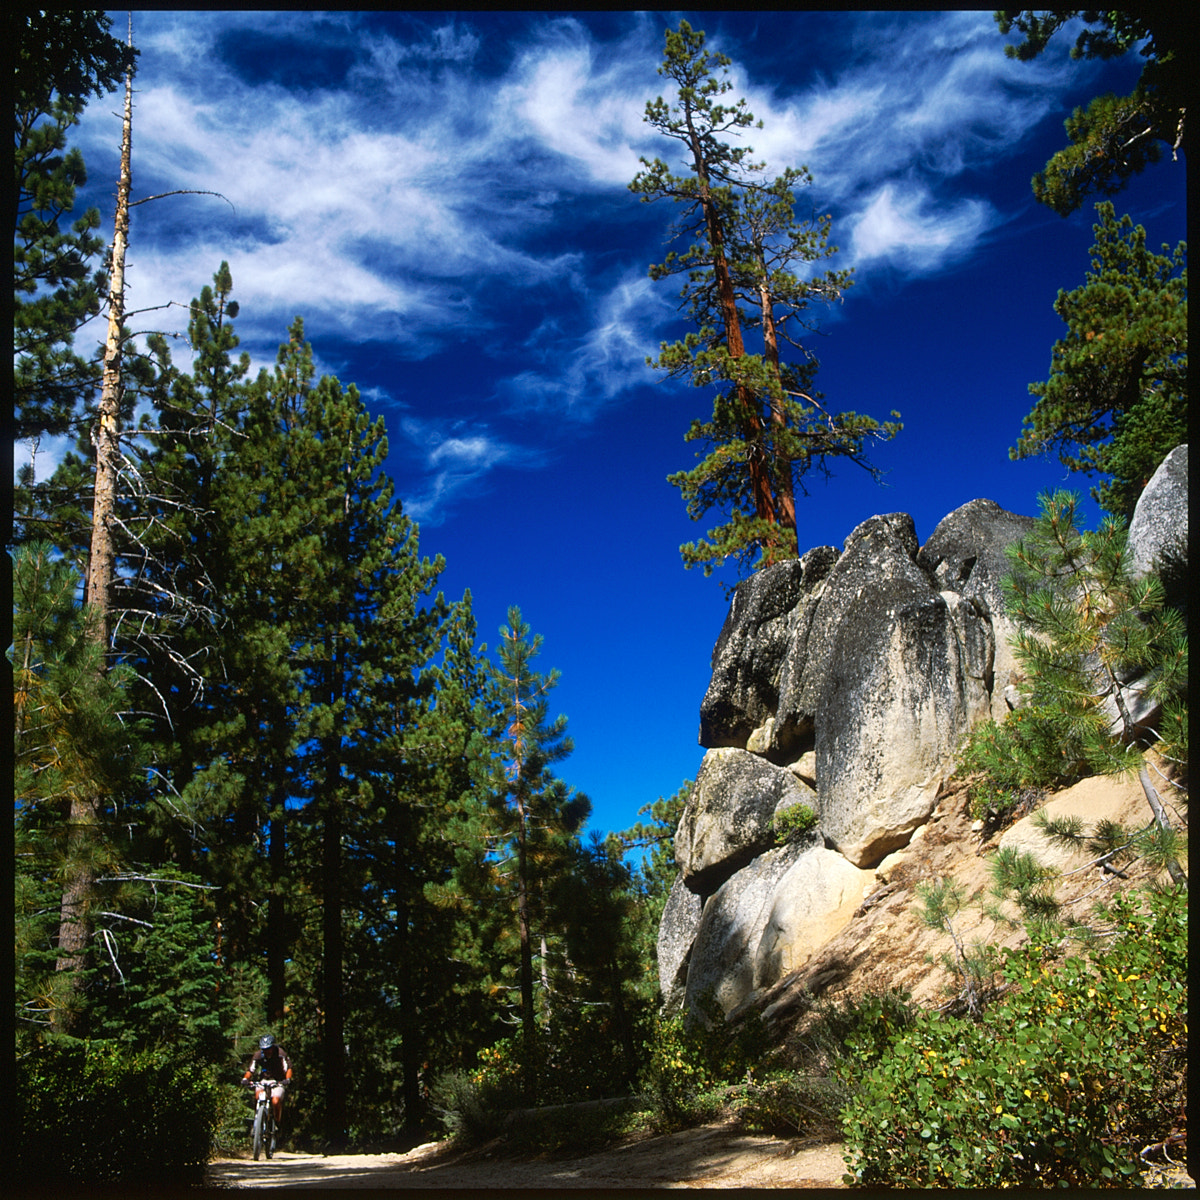 Photograph Tunnel Creek Station Trail by James Gries on 500px